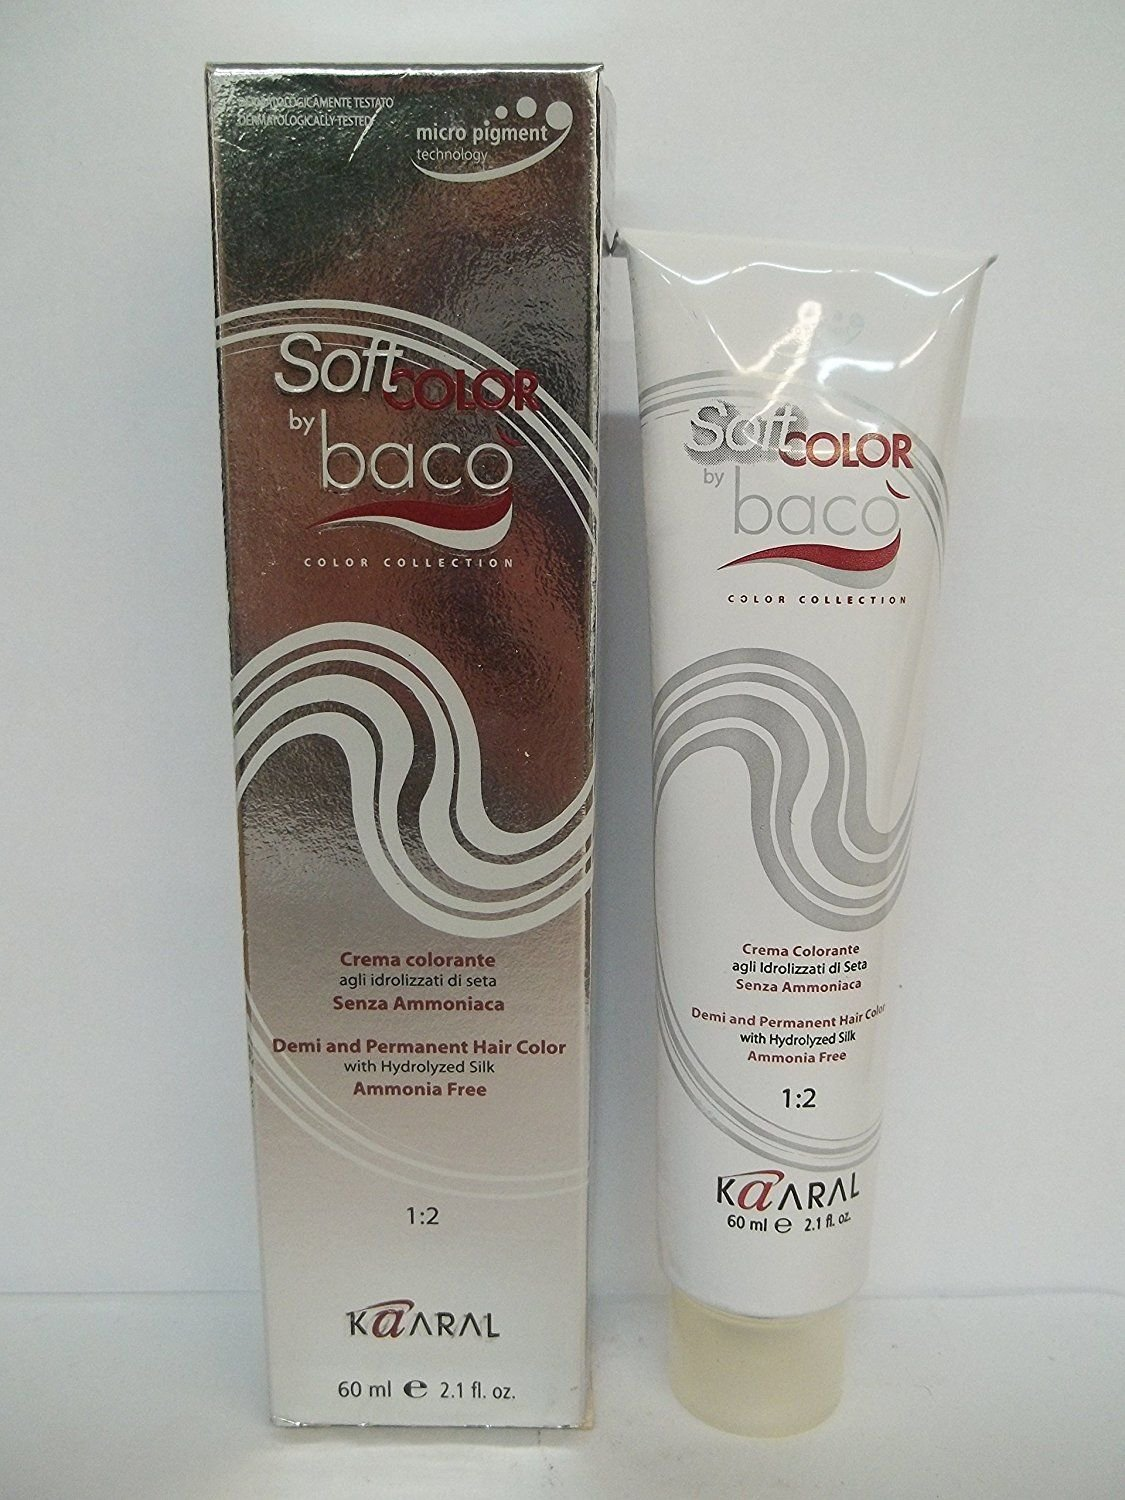 The Best Baco Hair Color Demi And Permanent Hair Color Ammonia Free Pictures